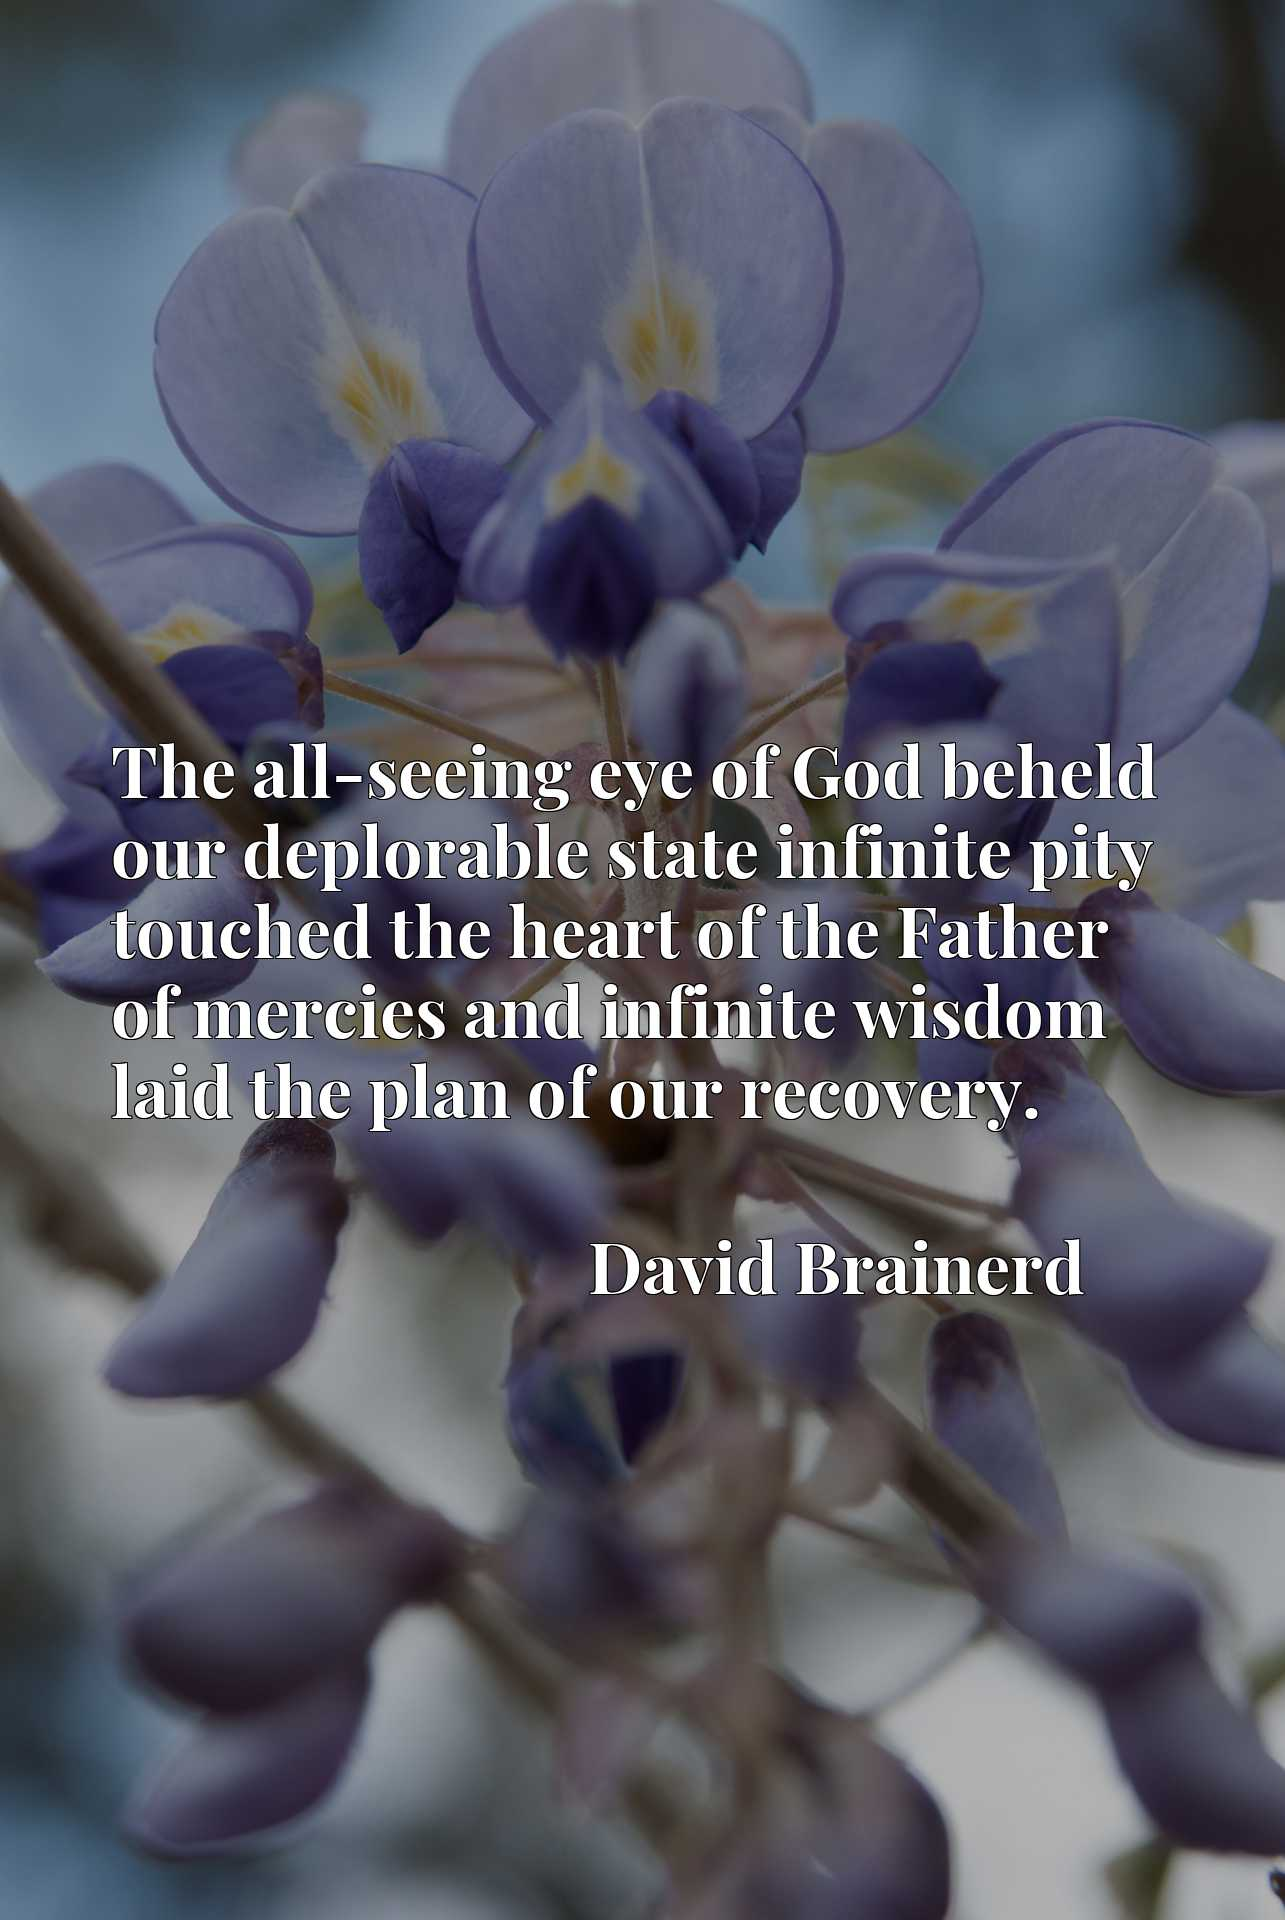 The all-seeing eye of God beheld our deplorable state infinite pity touched the heart of the Father of mercies and infinite wisdom laid the plan of our recovery.